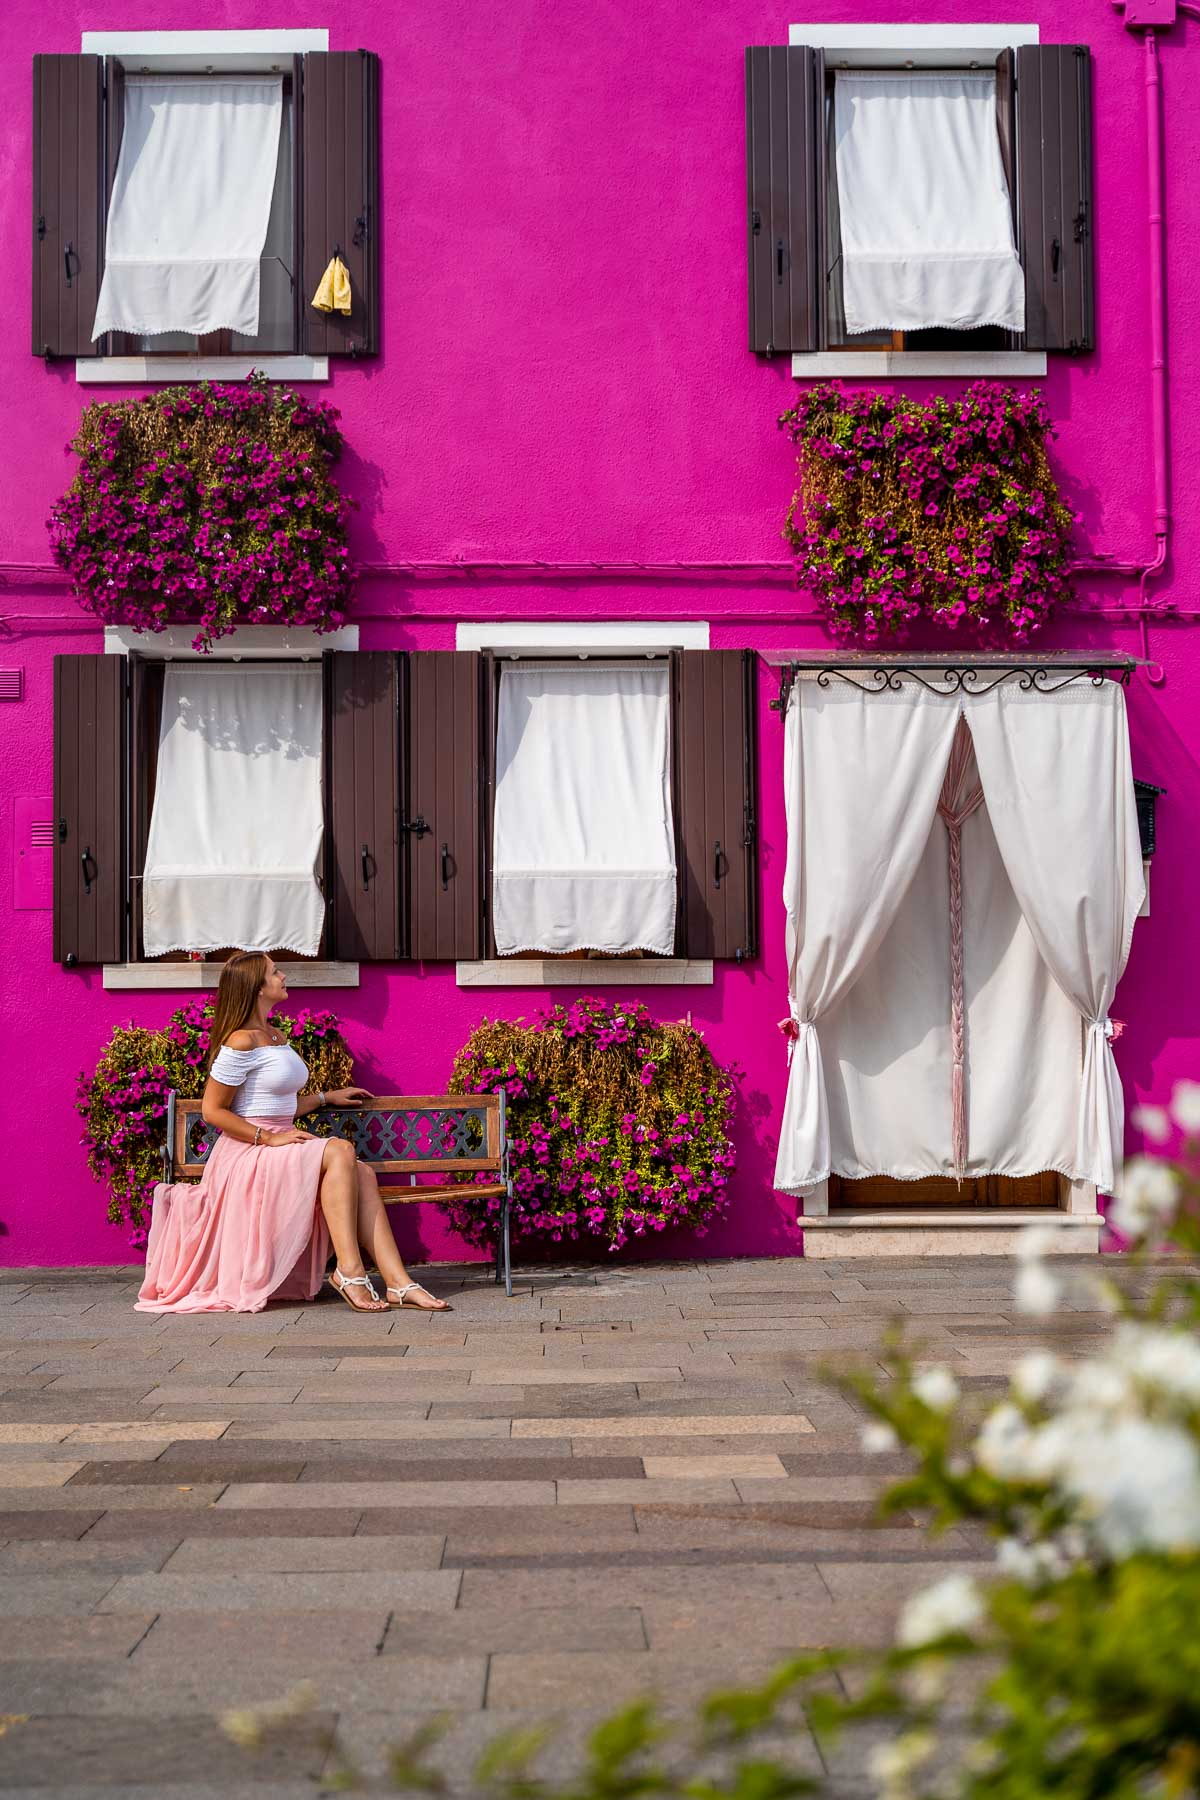 Girl in a pink skirt sitting in front of a pink house in Burano